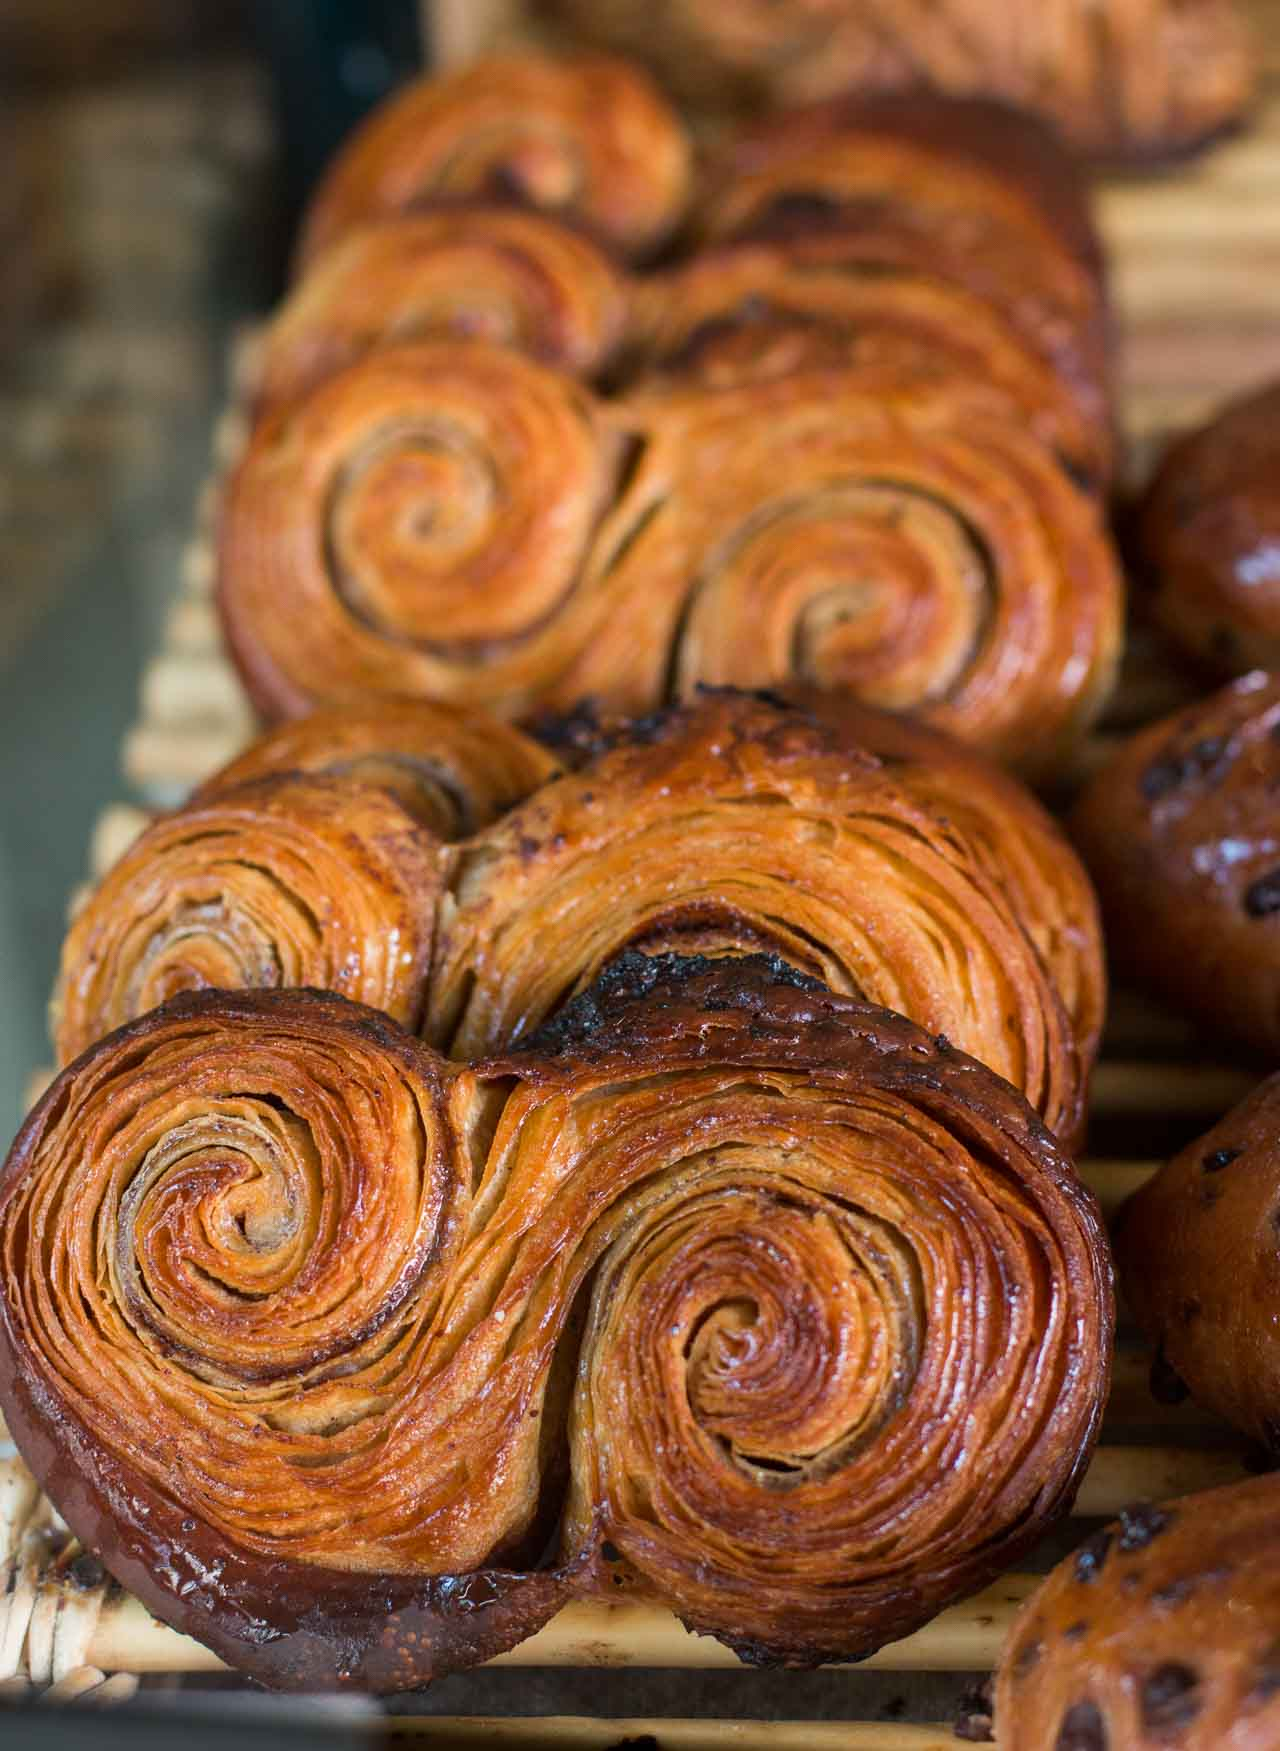 One of the newest (and best) bakeries in Paris featuring long-fermented doughs and rustic French pastries.